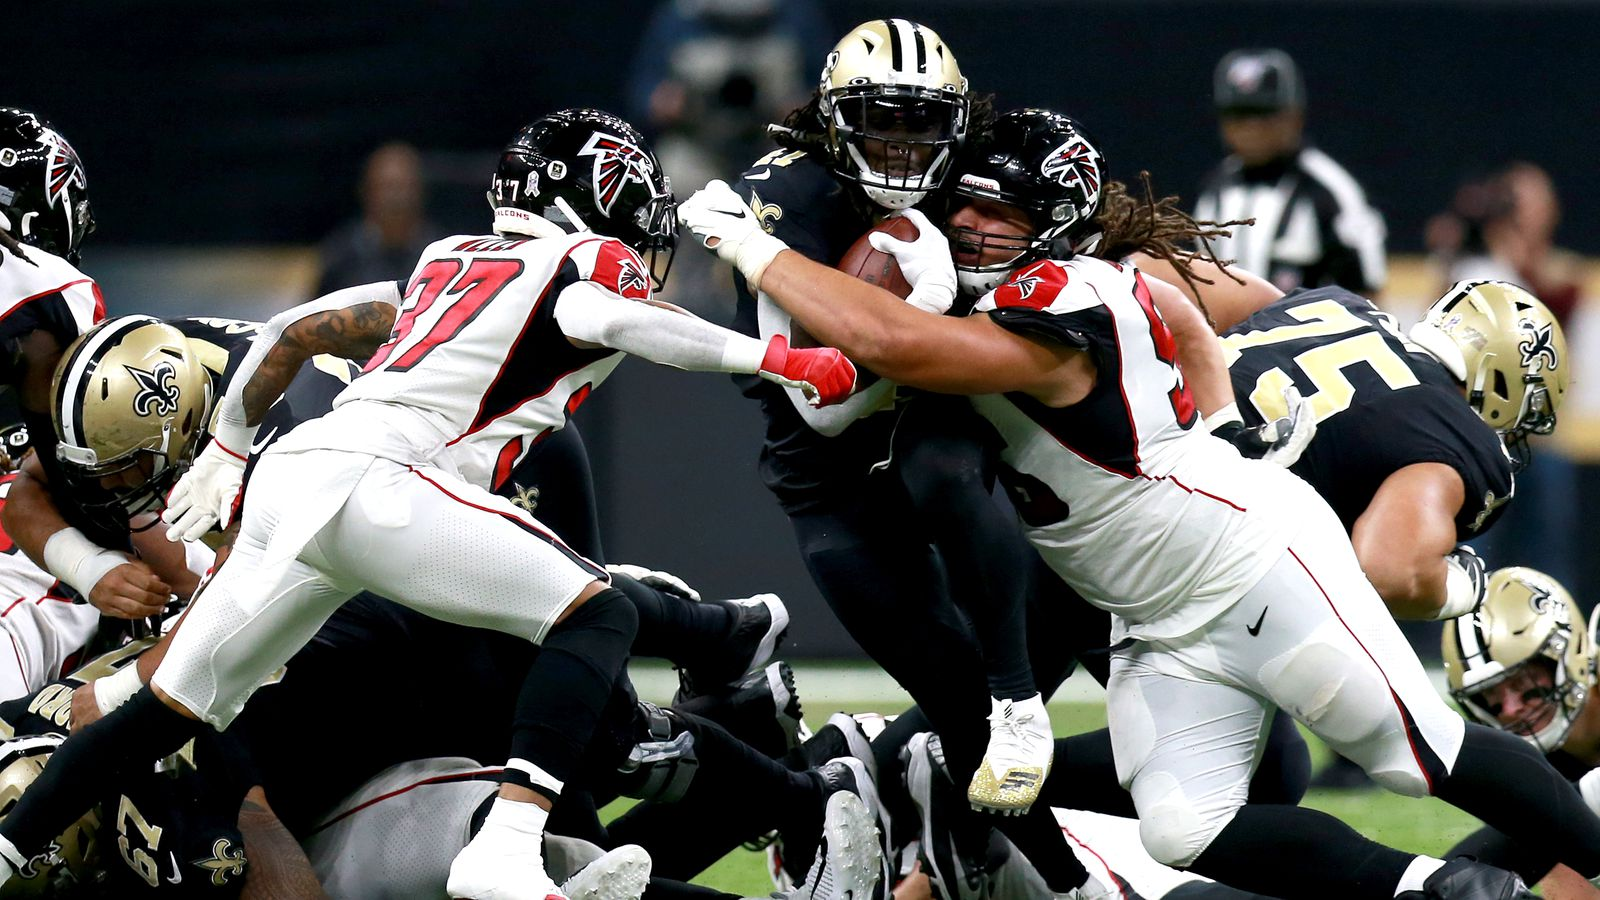 NFC playoff news: Falcons did the 49ers a favor beating the Saints - Niners Nation